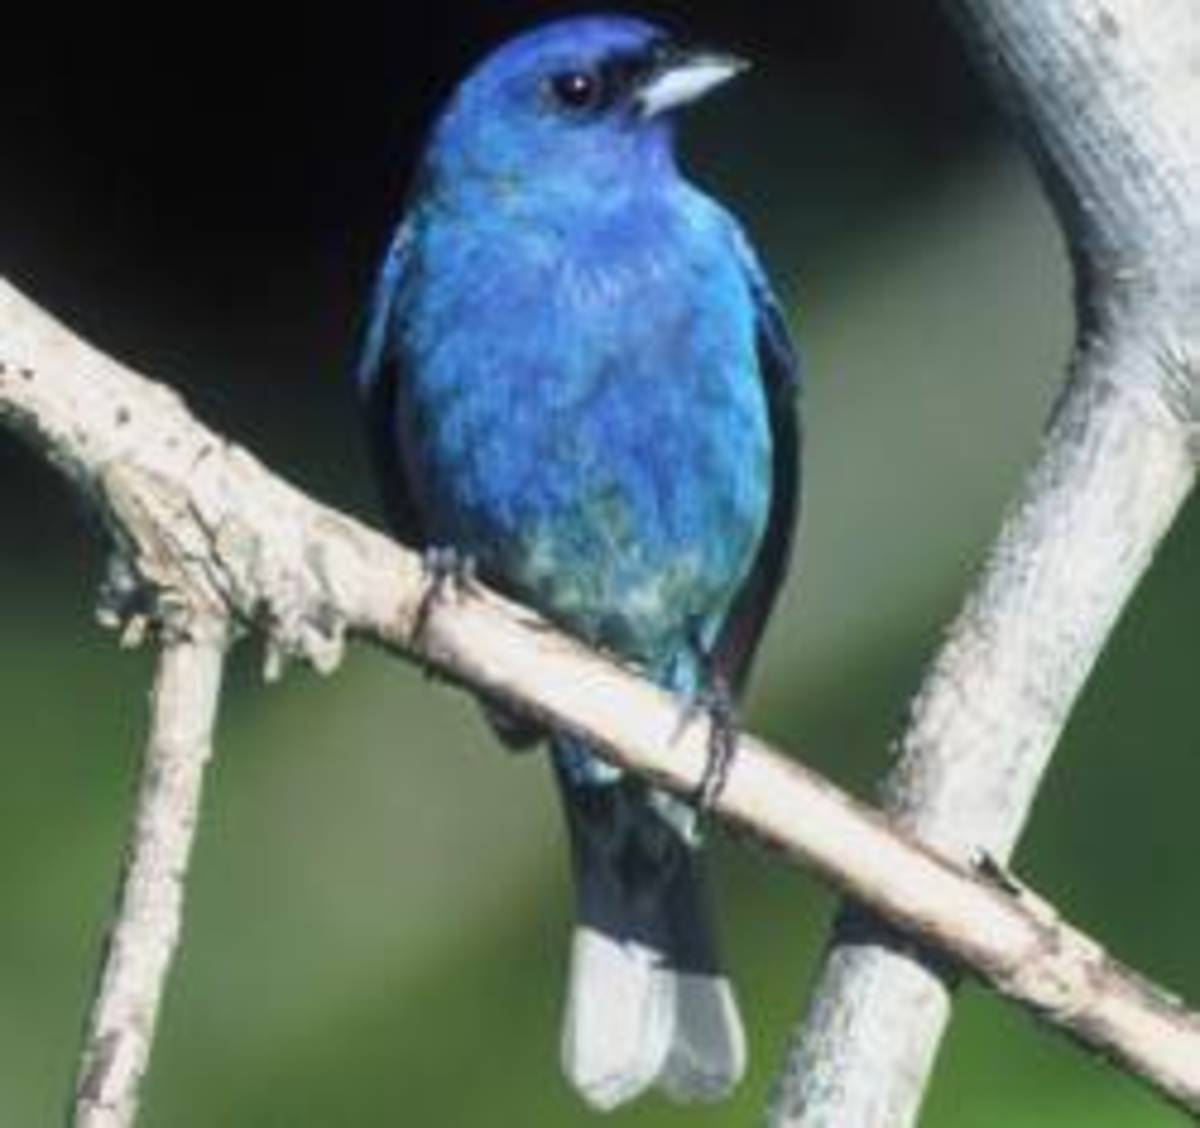 In some areas Indigo Bunting may be mistaken for a bluebird. On closer inspection the differences are obvious.